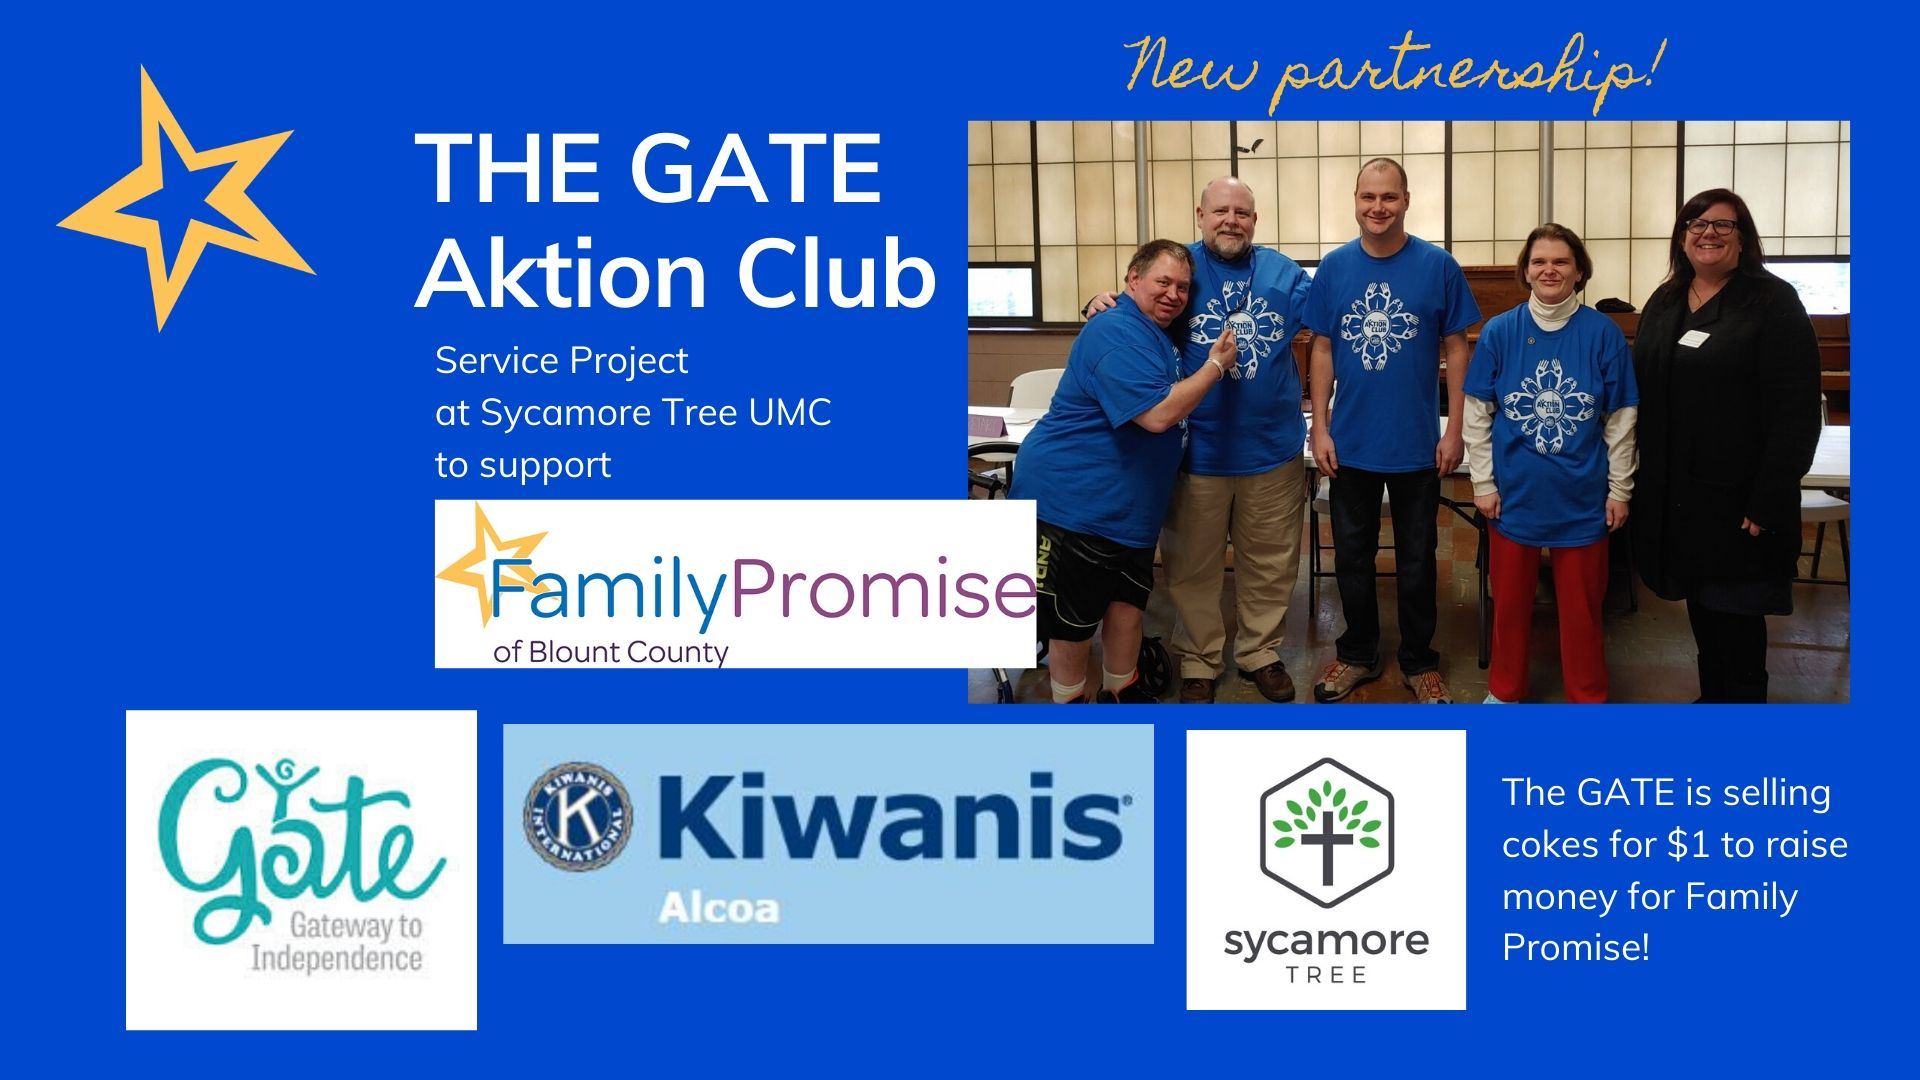 The GATE Aktion Club – new partner!